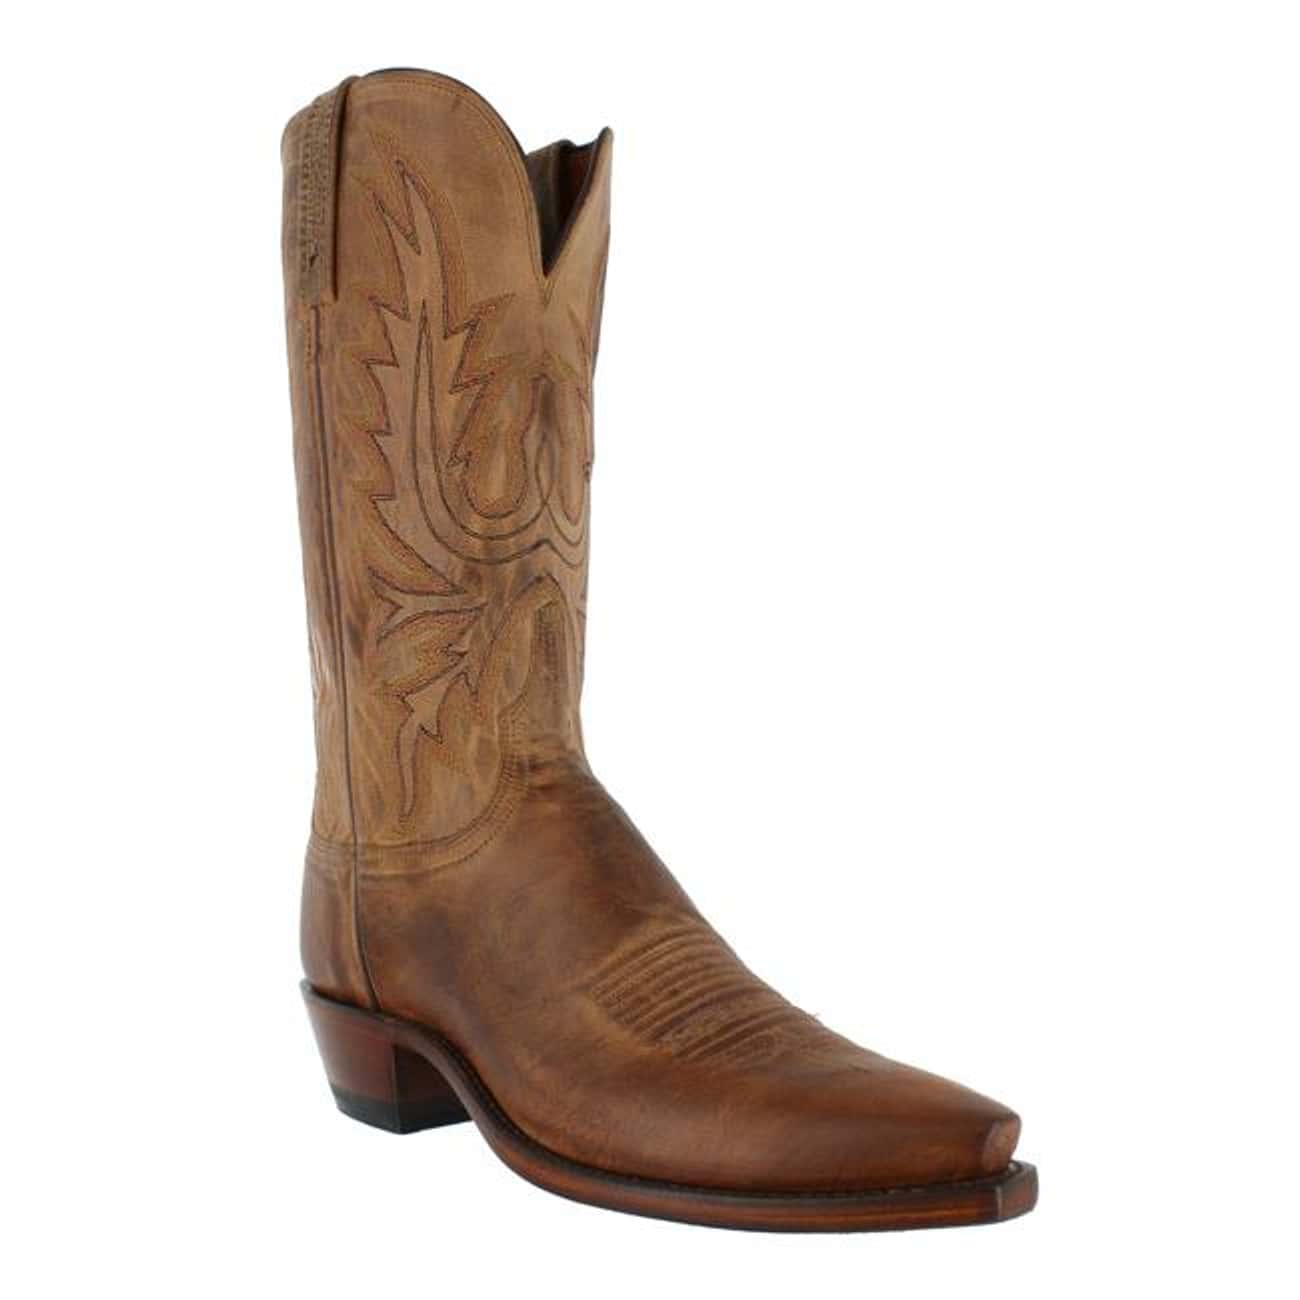 Lucchese is listed (or ranked) 1 on the list The Best Cowboy Boots